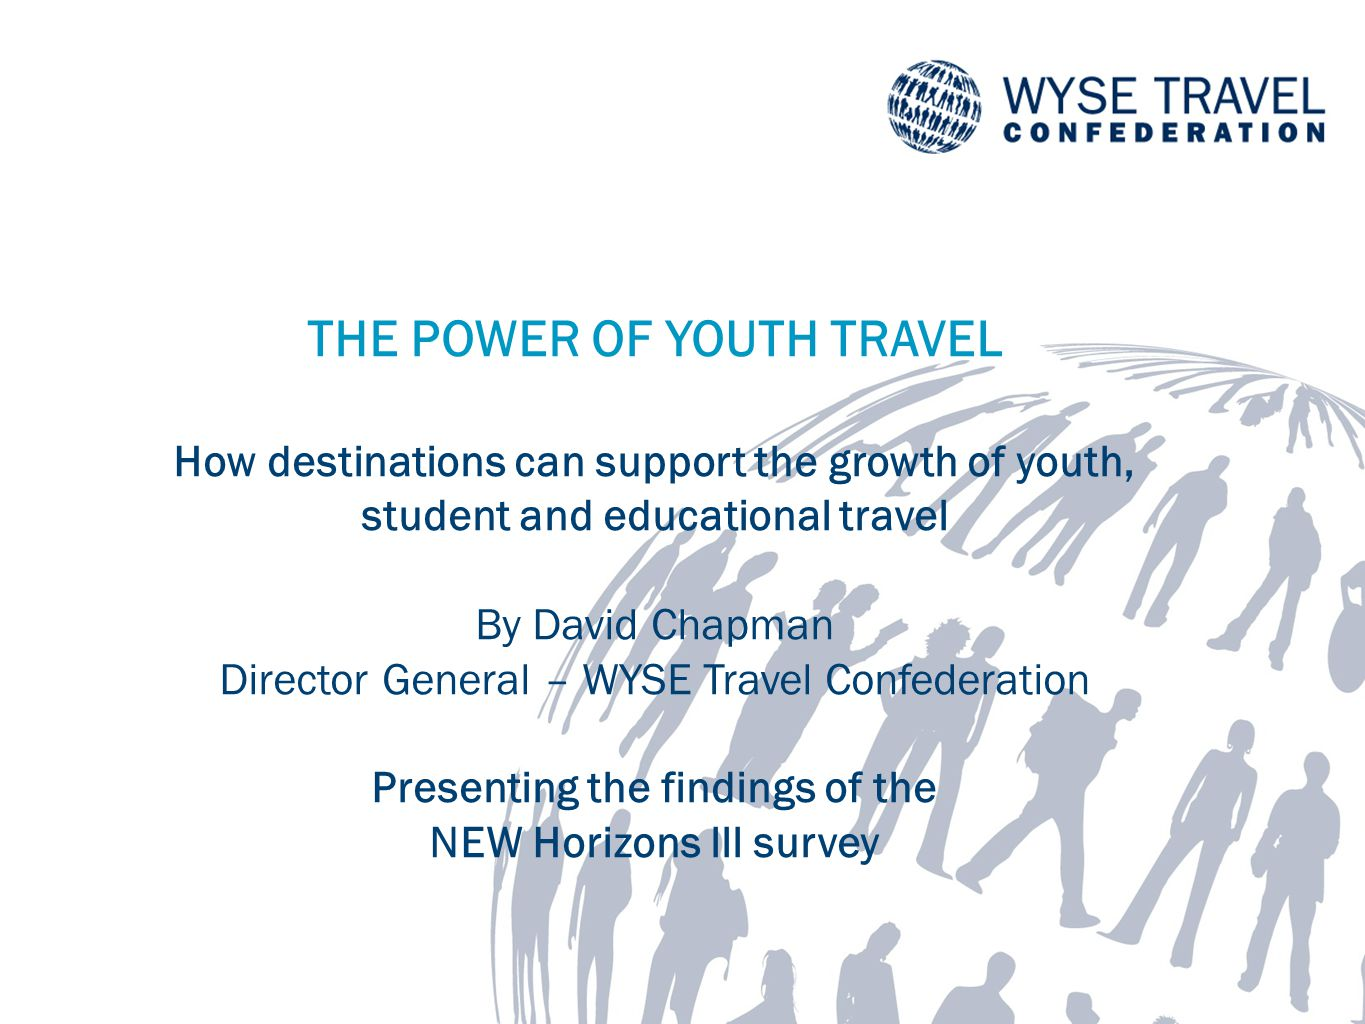 THE POWER OF YOUTH TRAVEL How destinations can support the growth of youth, student and educational travel By David Chapman Director General – WYSE Travel Confederation Presenting the findings of the NEW Horizons lll survey